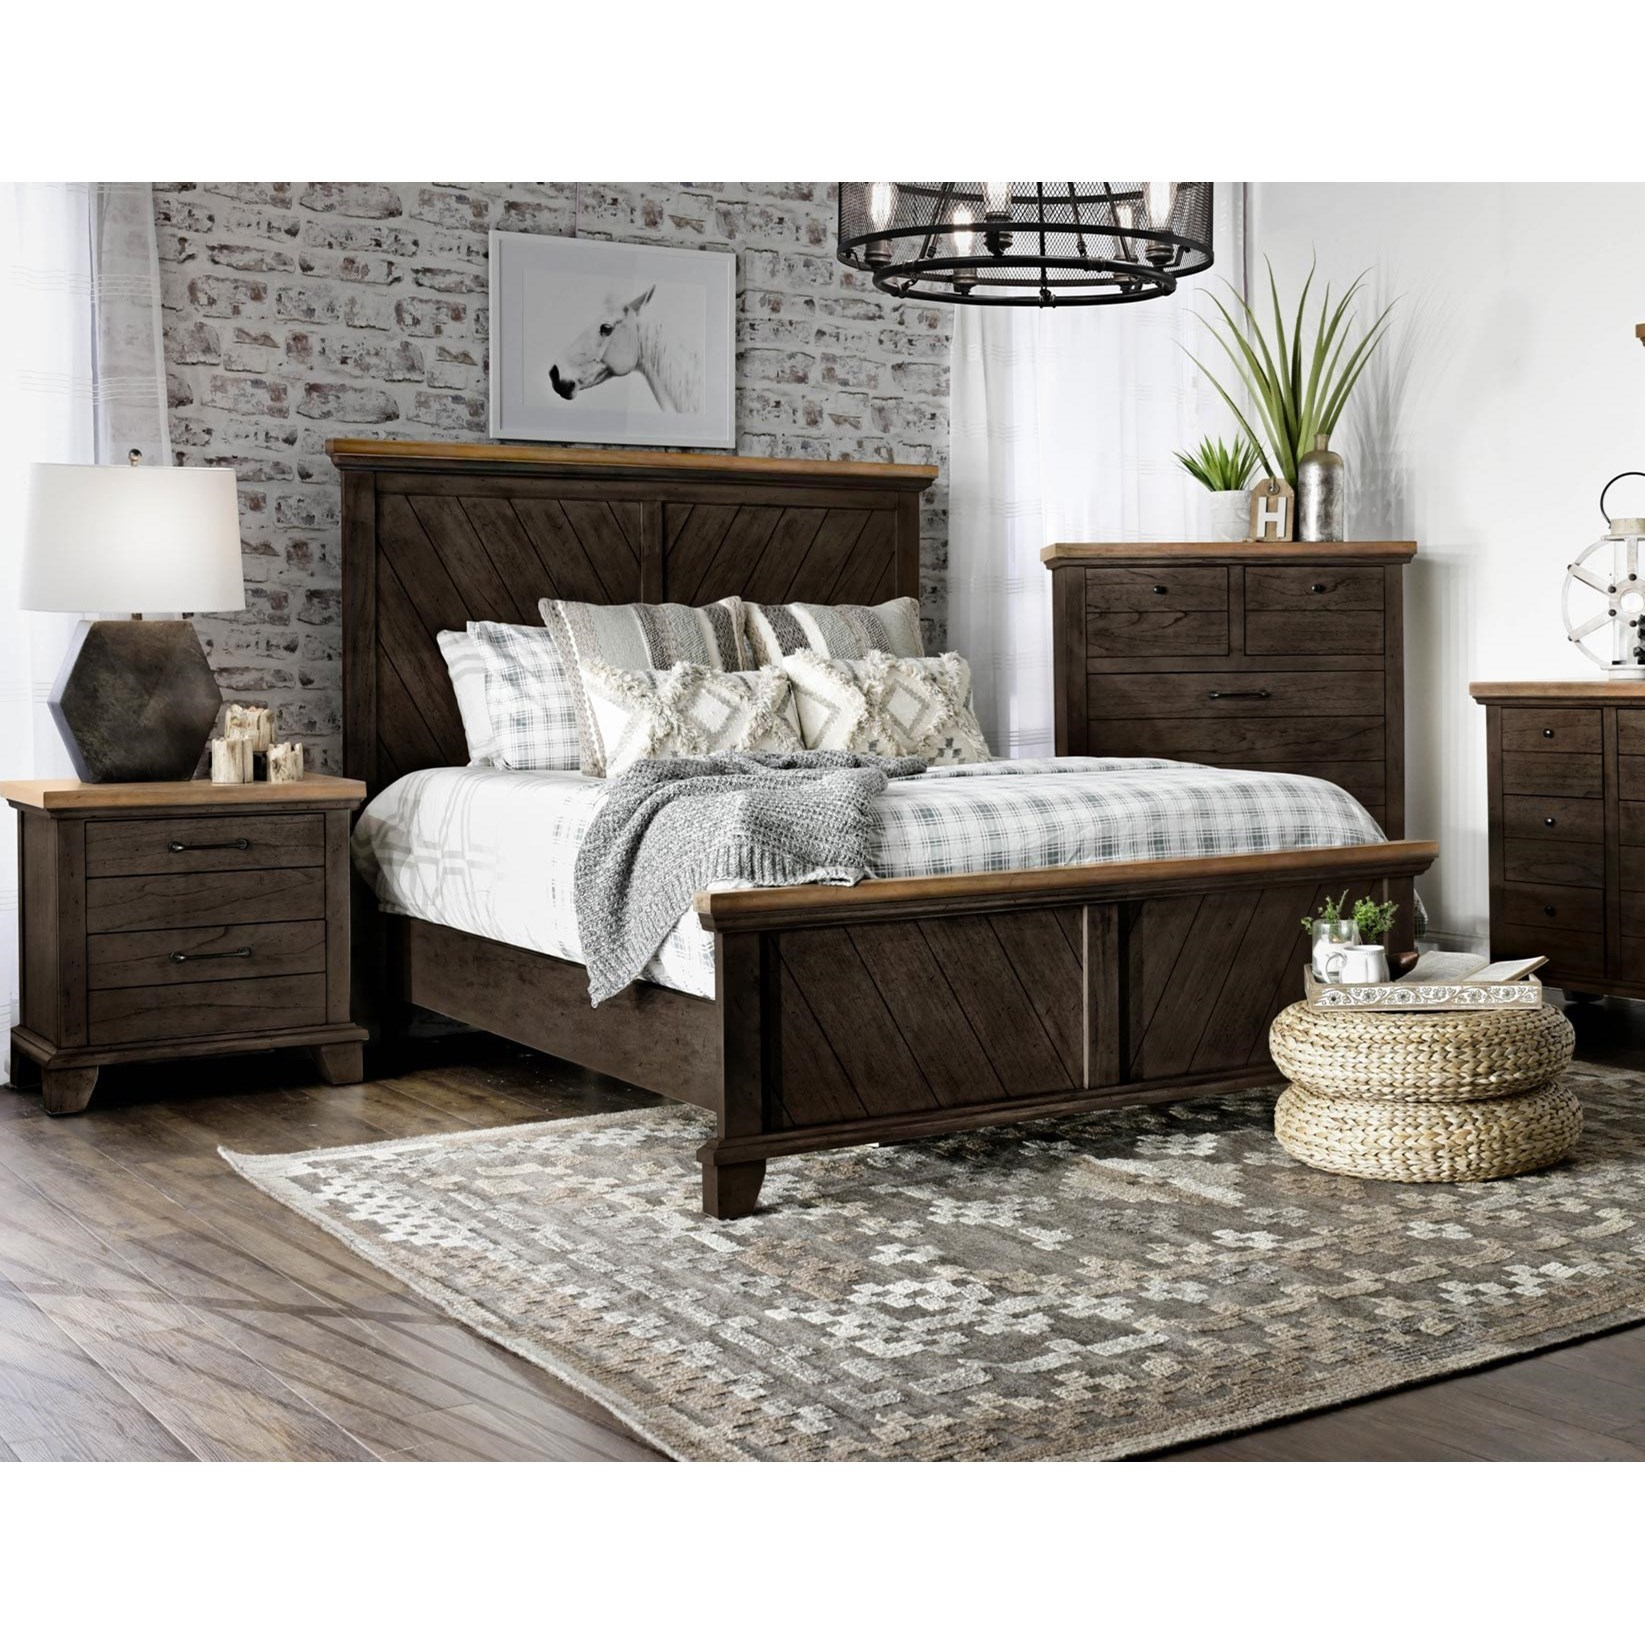 Bear Creek Queen Bedroom Group by Steve Silver at Van Hill Furniture